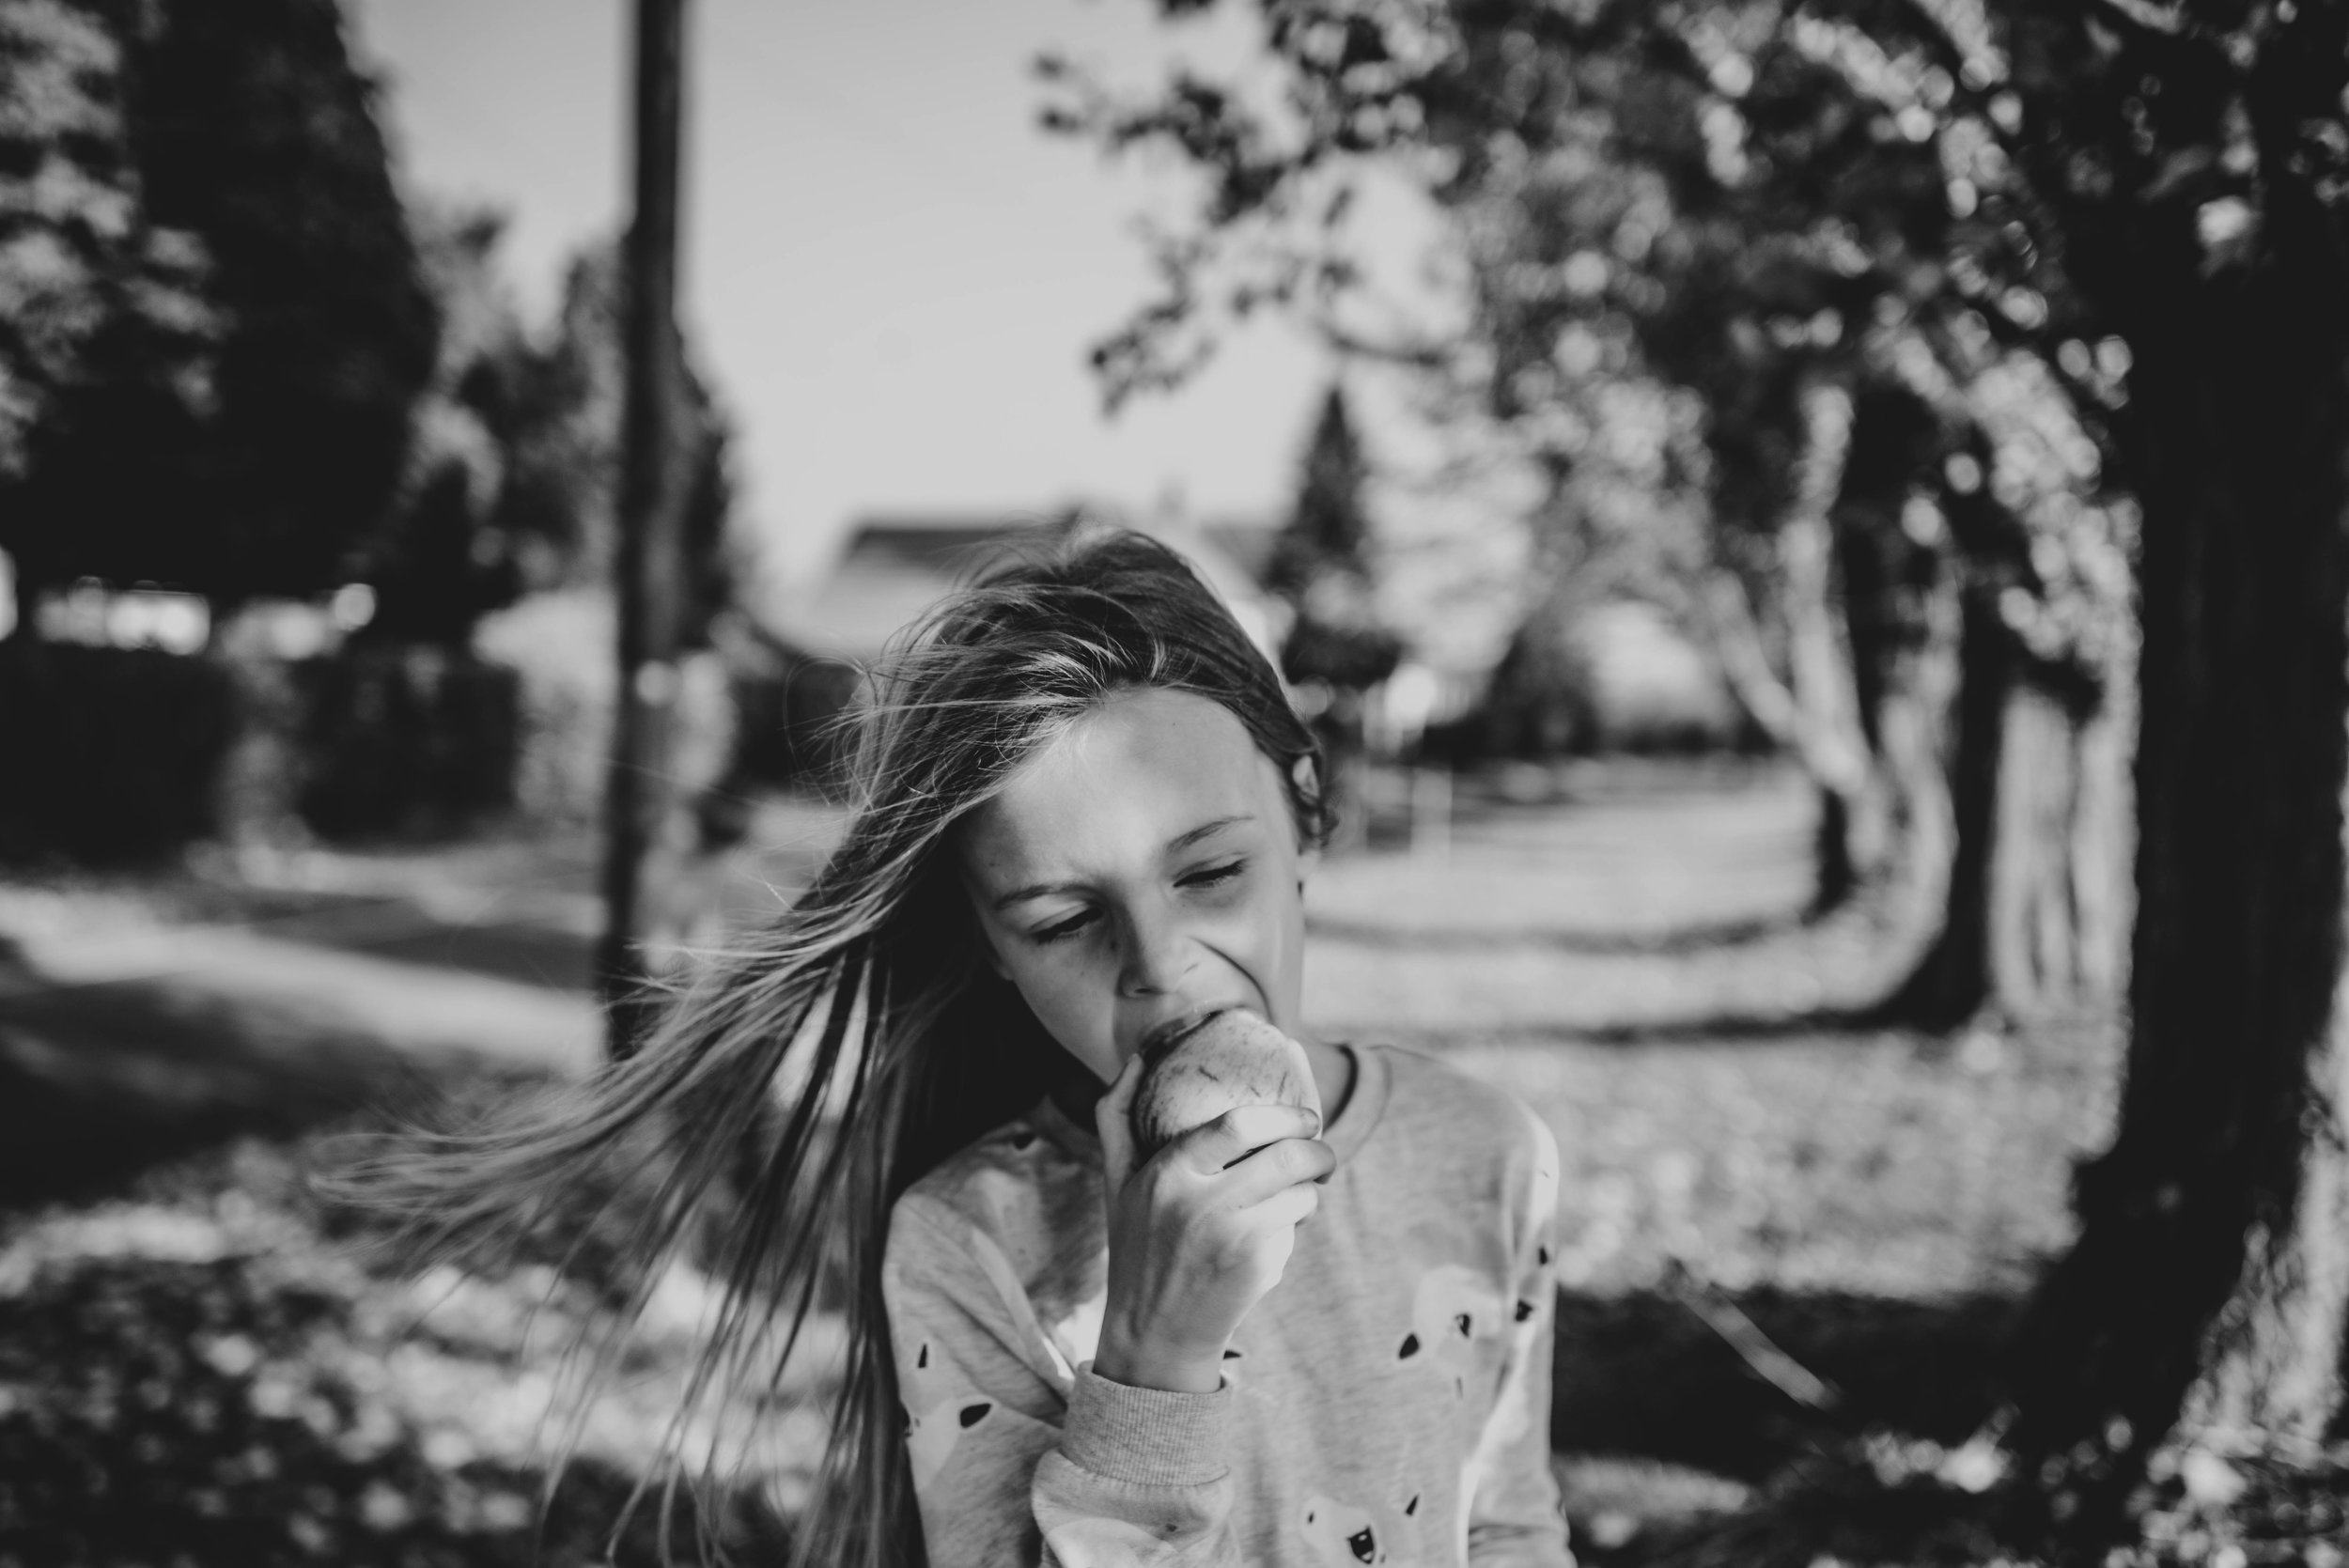 Young girl eats apple from tree Essex UK Documentary Wedding Photographer